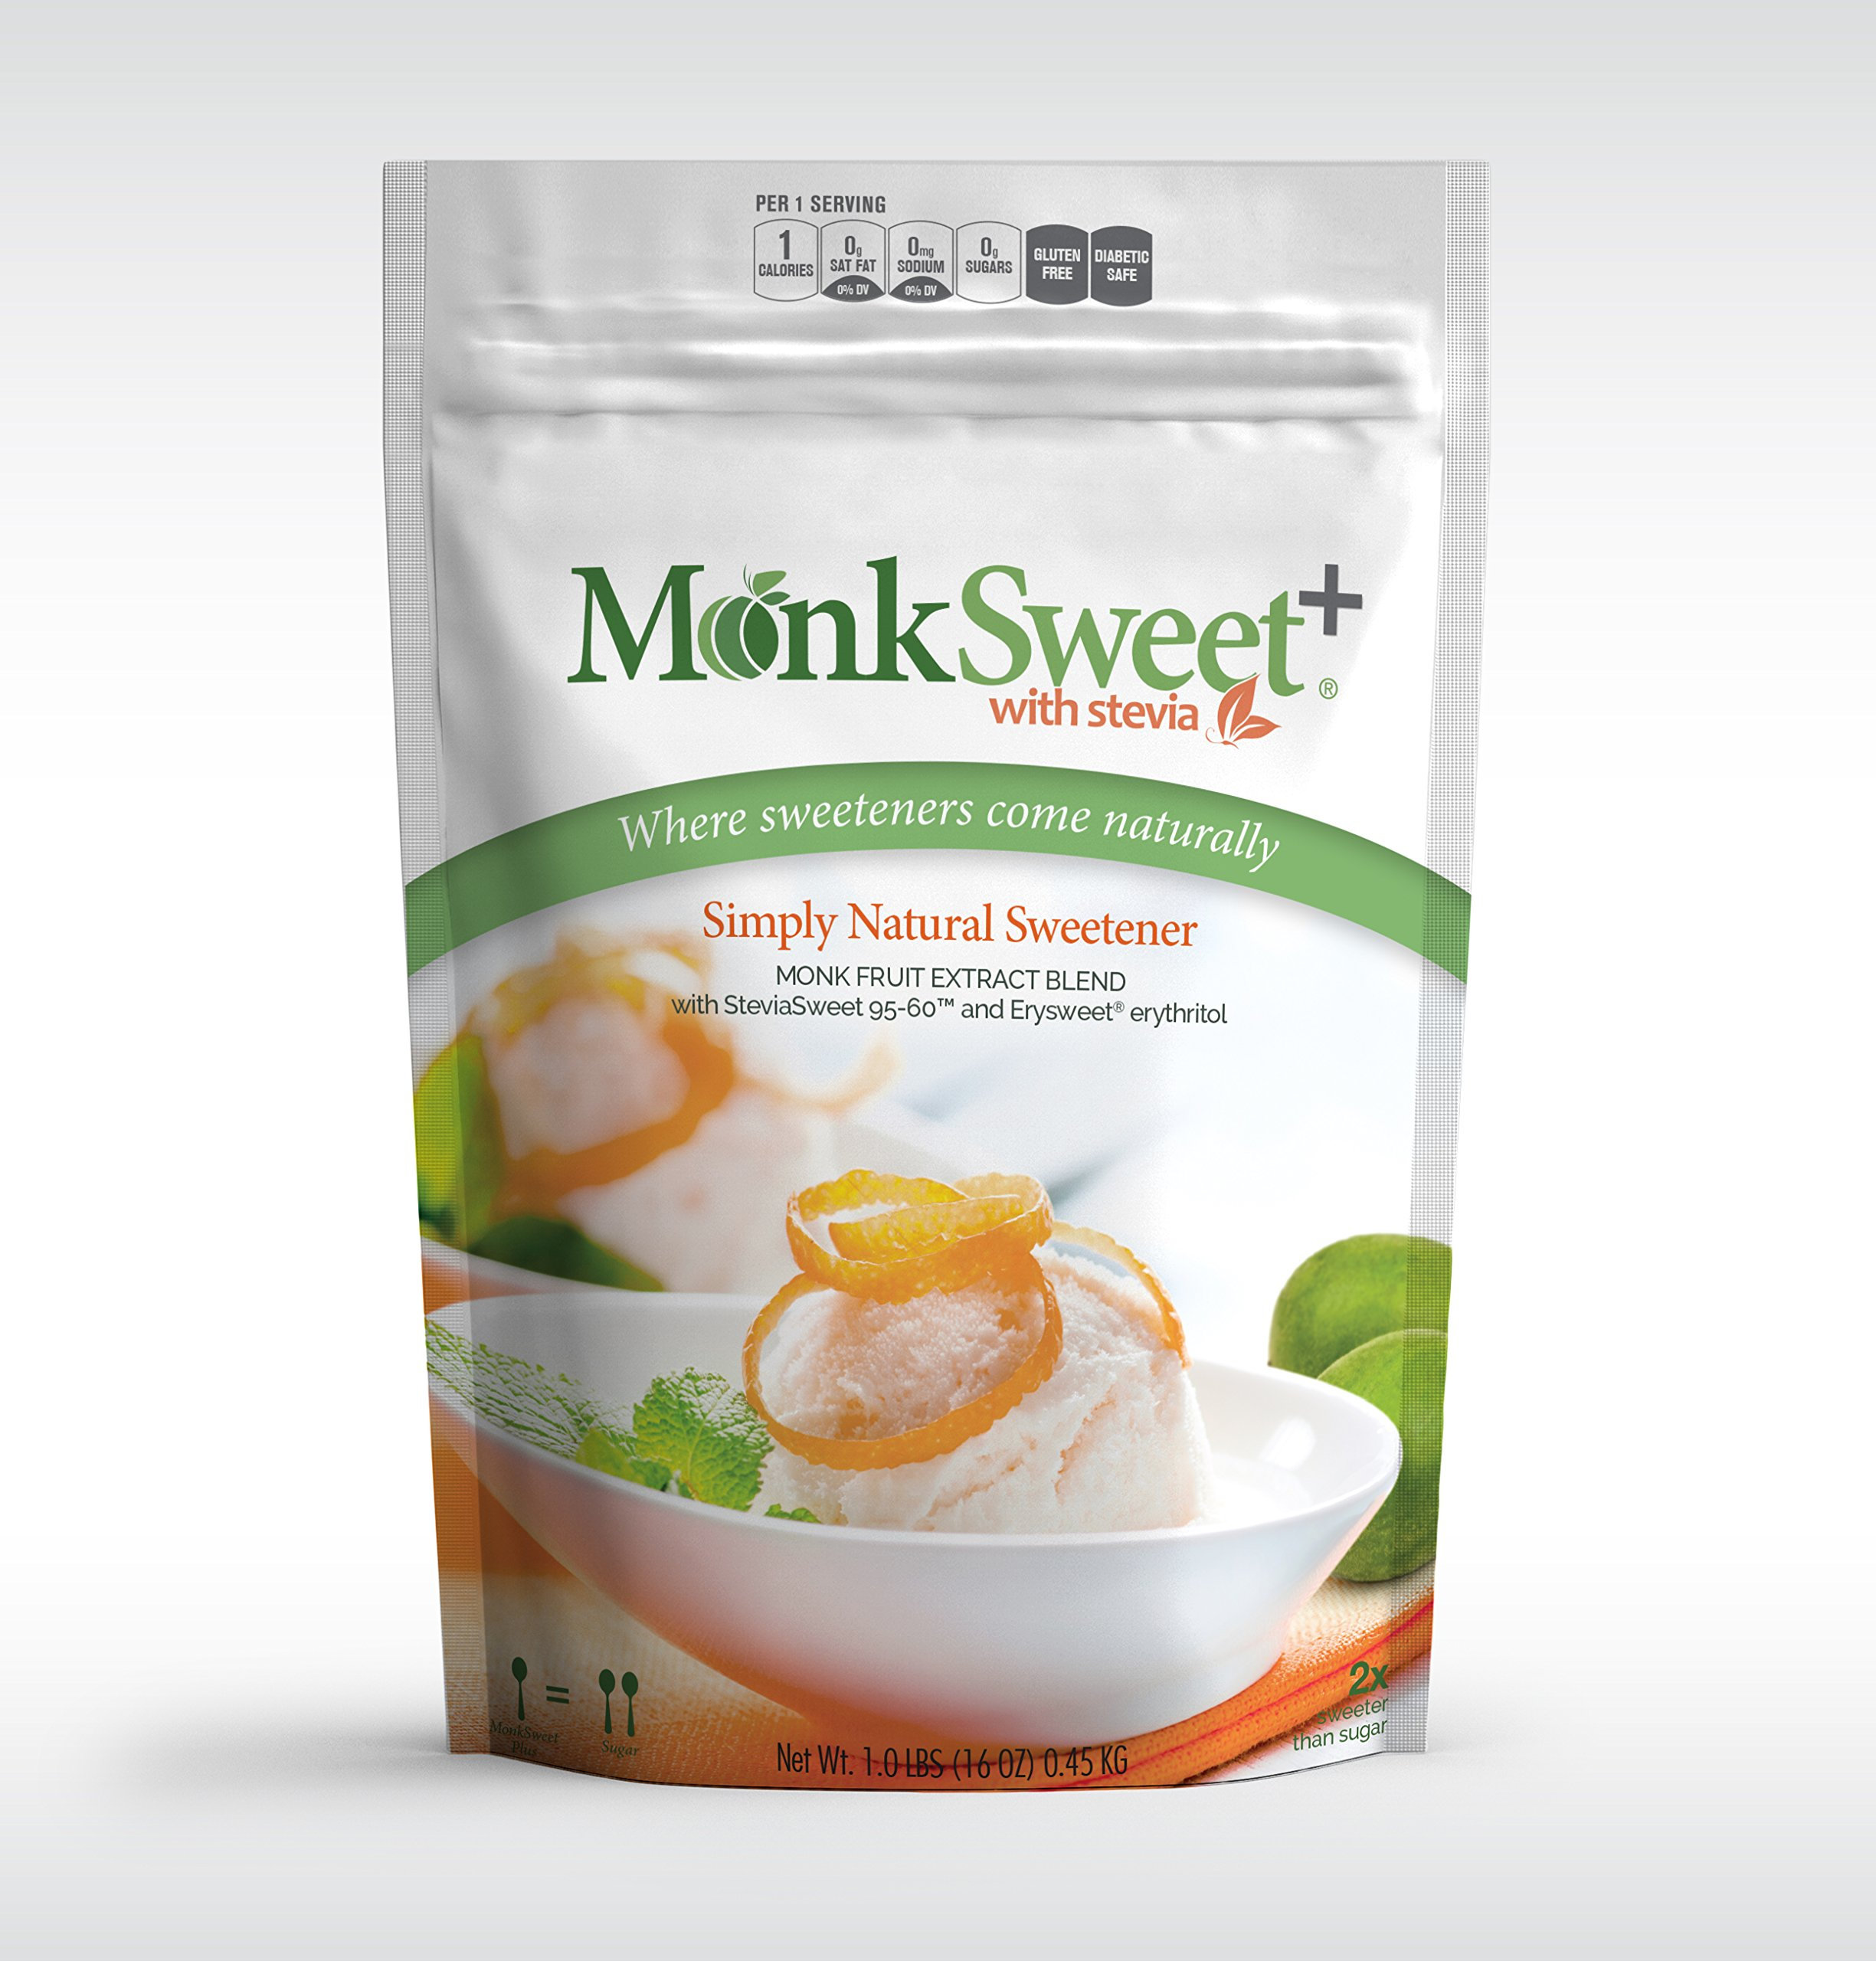 MonkSweet Plus - 1 lb bag/6 pack Monk Fruit, Stevia & Erythritol Blend NonGMO Low Carb Sweetener